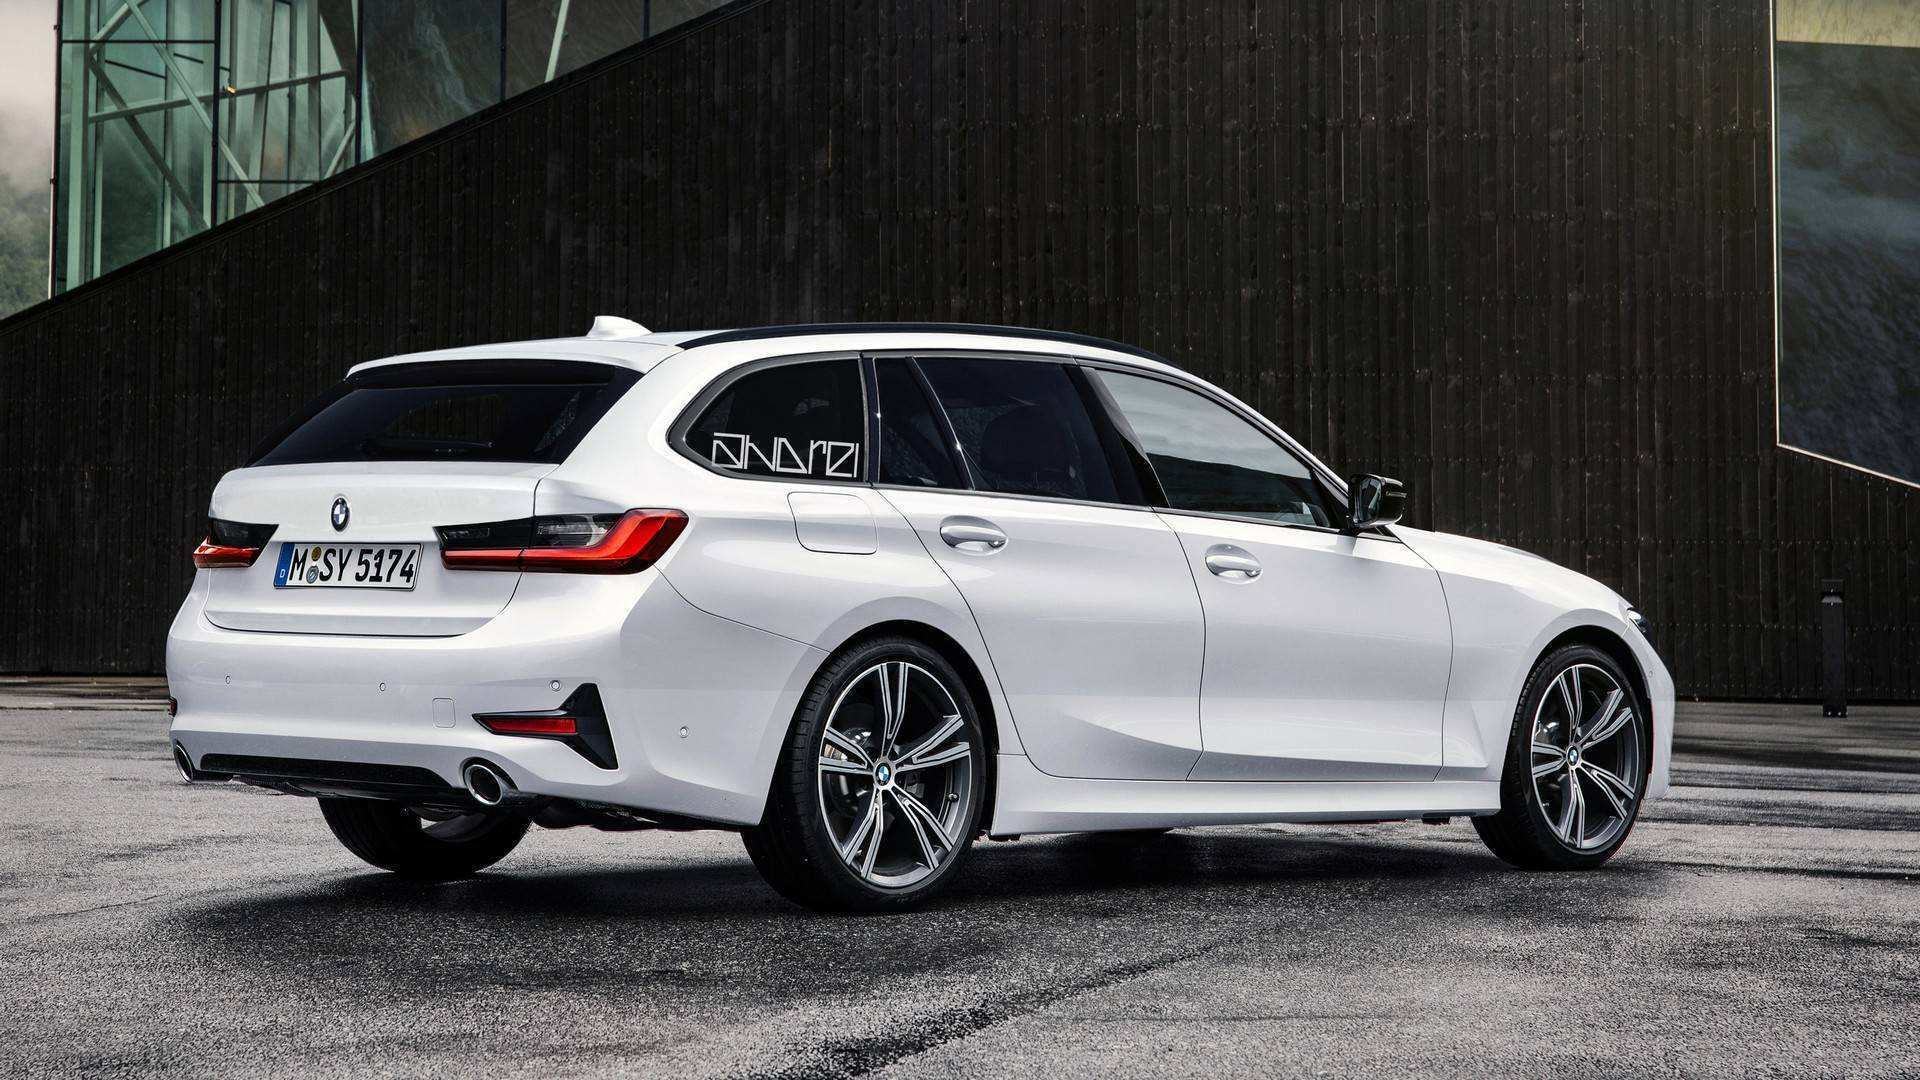 80 The Best 2020 BMW 3 Series Brings Images